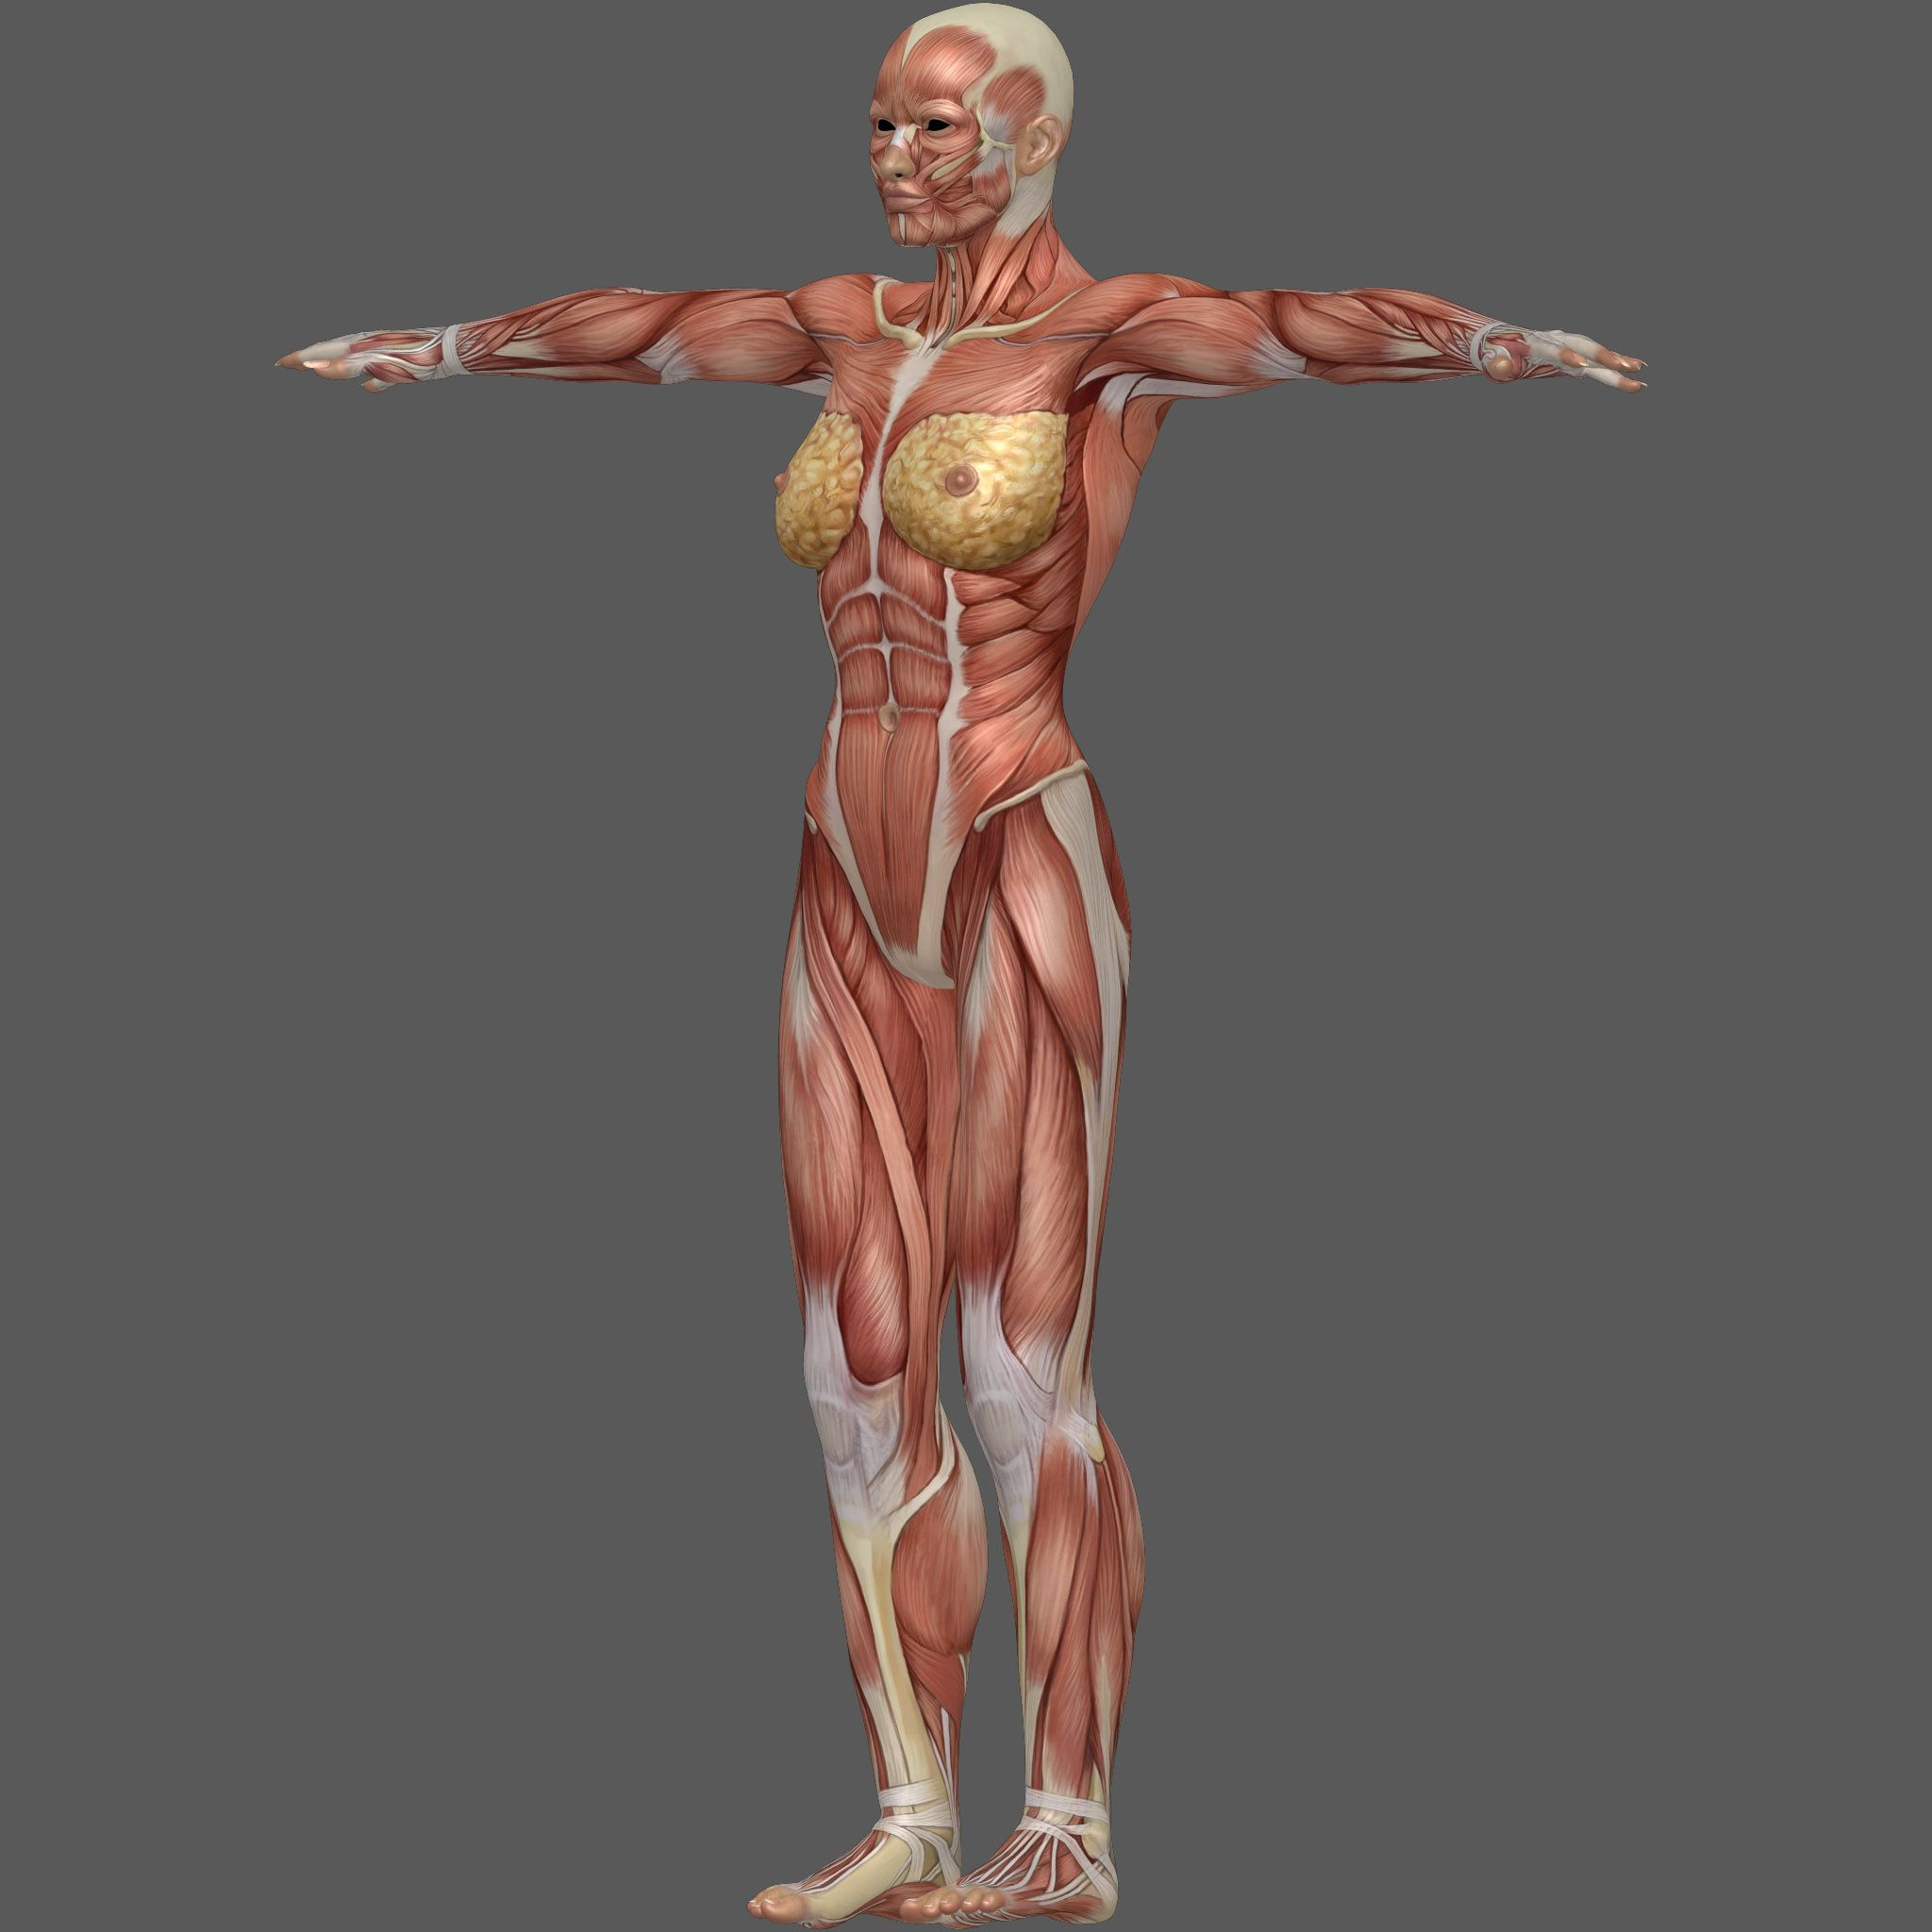 torso side view muscle anatomy woman - Google Search | MUSCLES AND ...